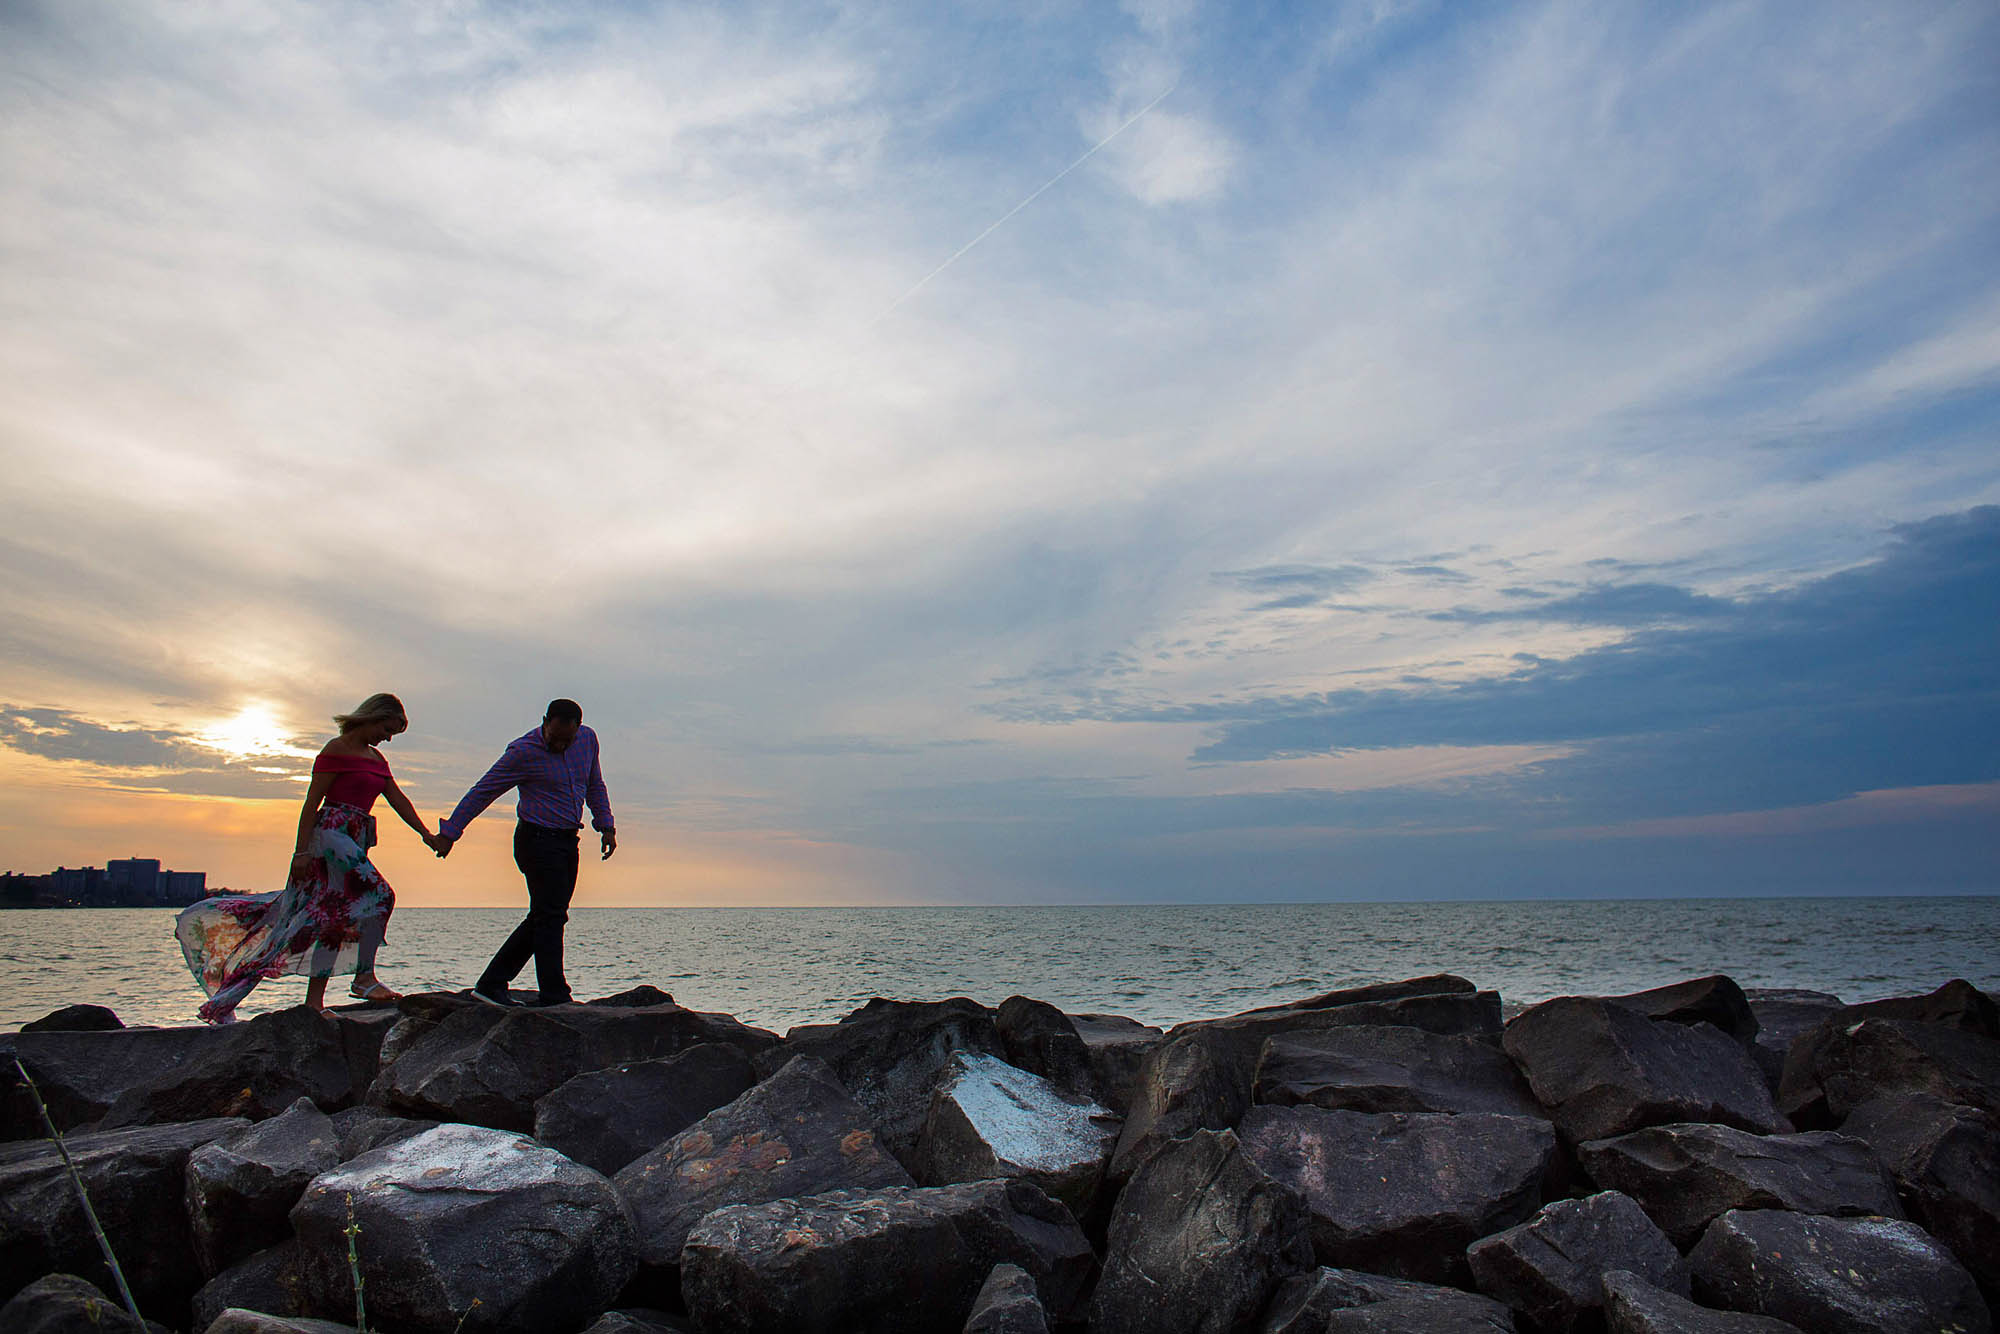 A picture taken at sunset on a cloudy evening of an engaged couple walking hand in hand in the lower left of the photo along a large stone path at Edgewater Park in Ohio with Lake Erie in the background.